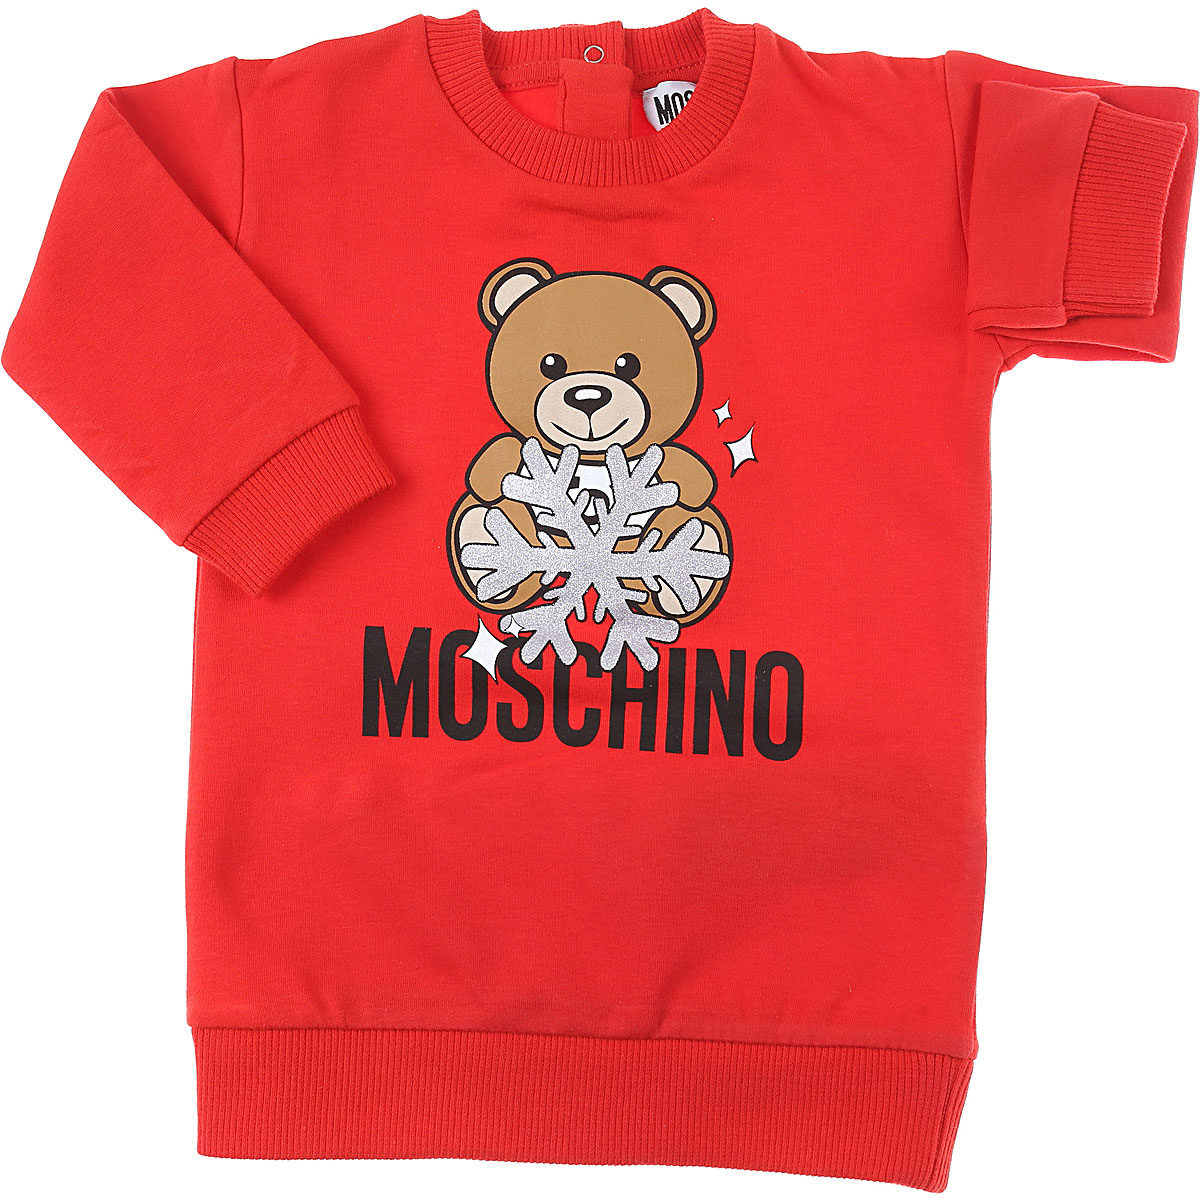 Moschino Baby Dress for Girls On Sale, Red, Cotton, 2019, 12M 18M 24M 3Y 9M